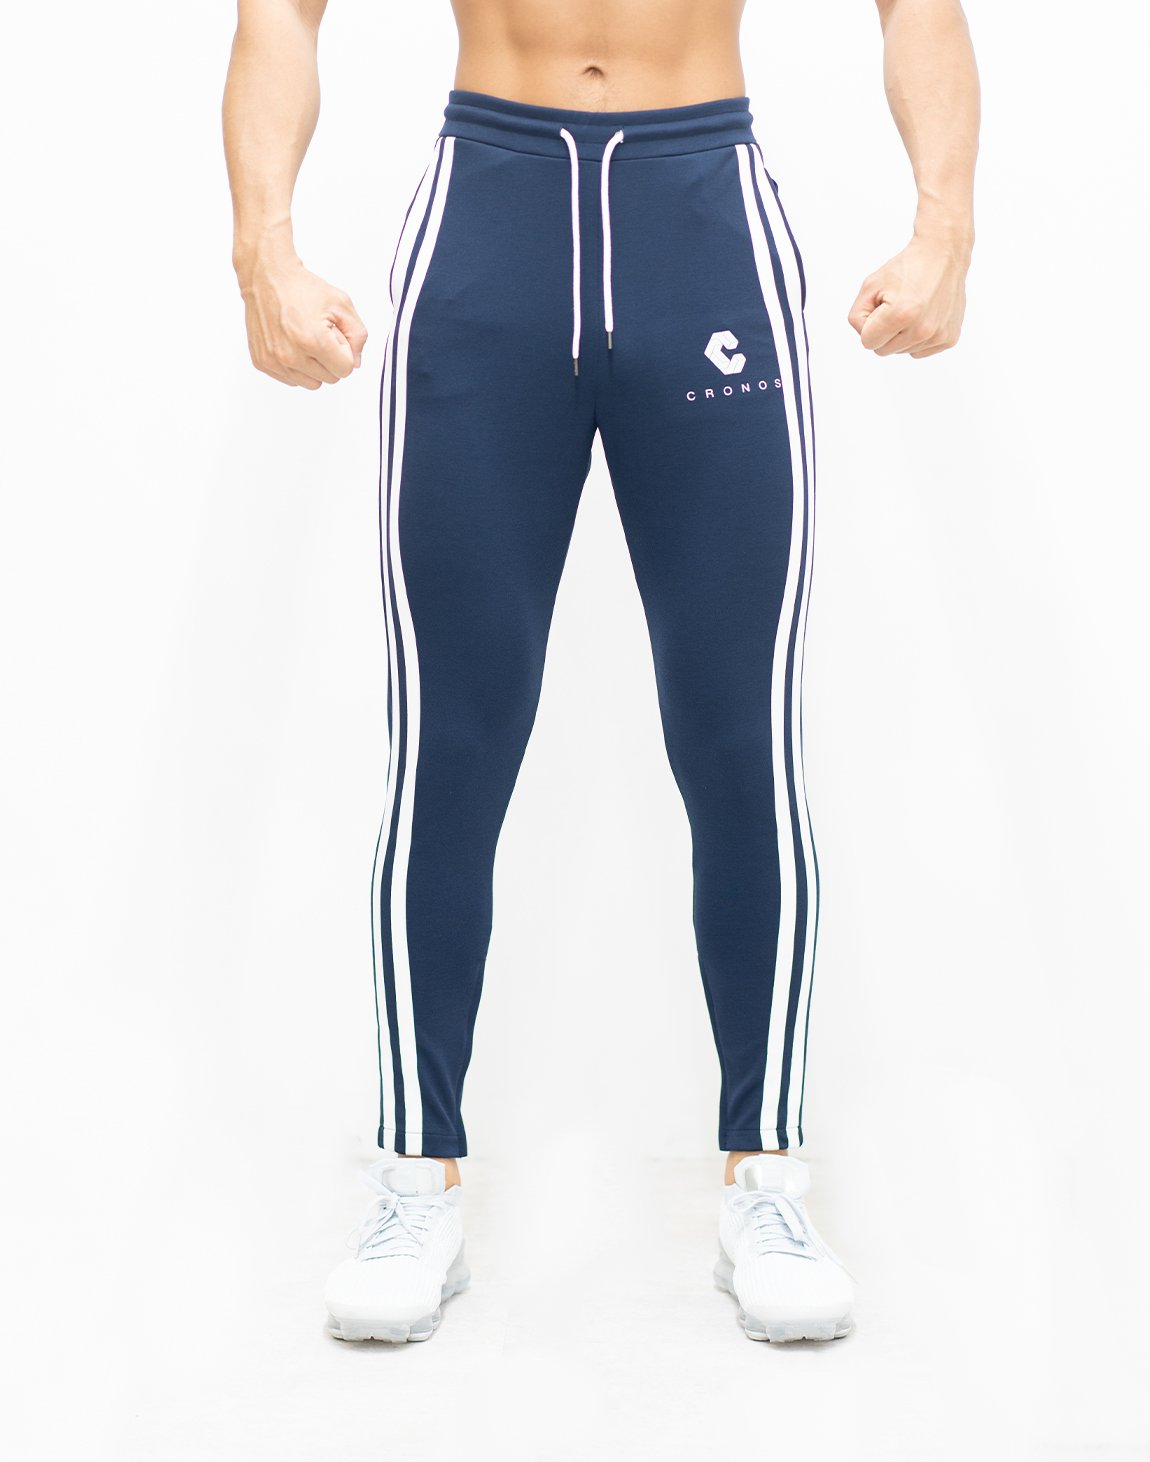 <img class='new_mark_img1' src='https://img.shop-pro.jp/img/new/icons1.gif' style='border:none;display:inline;margin:0px;padding:0px;width:auto;' />CRNS TWO LINE CALF LOGO PANTS 【NAVY】